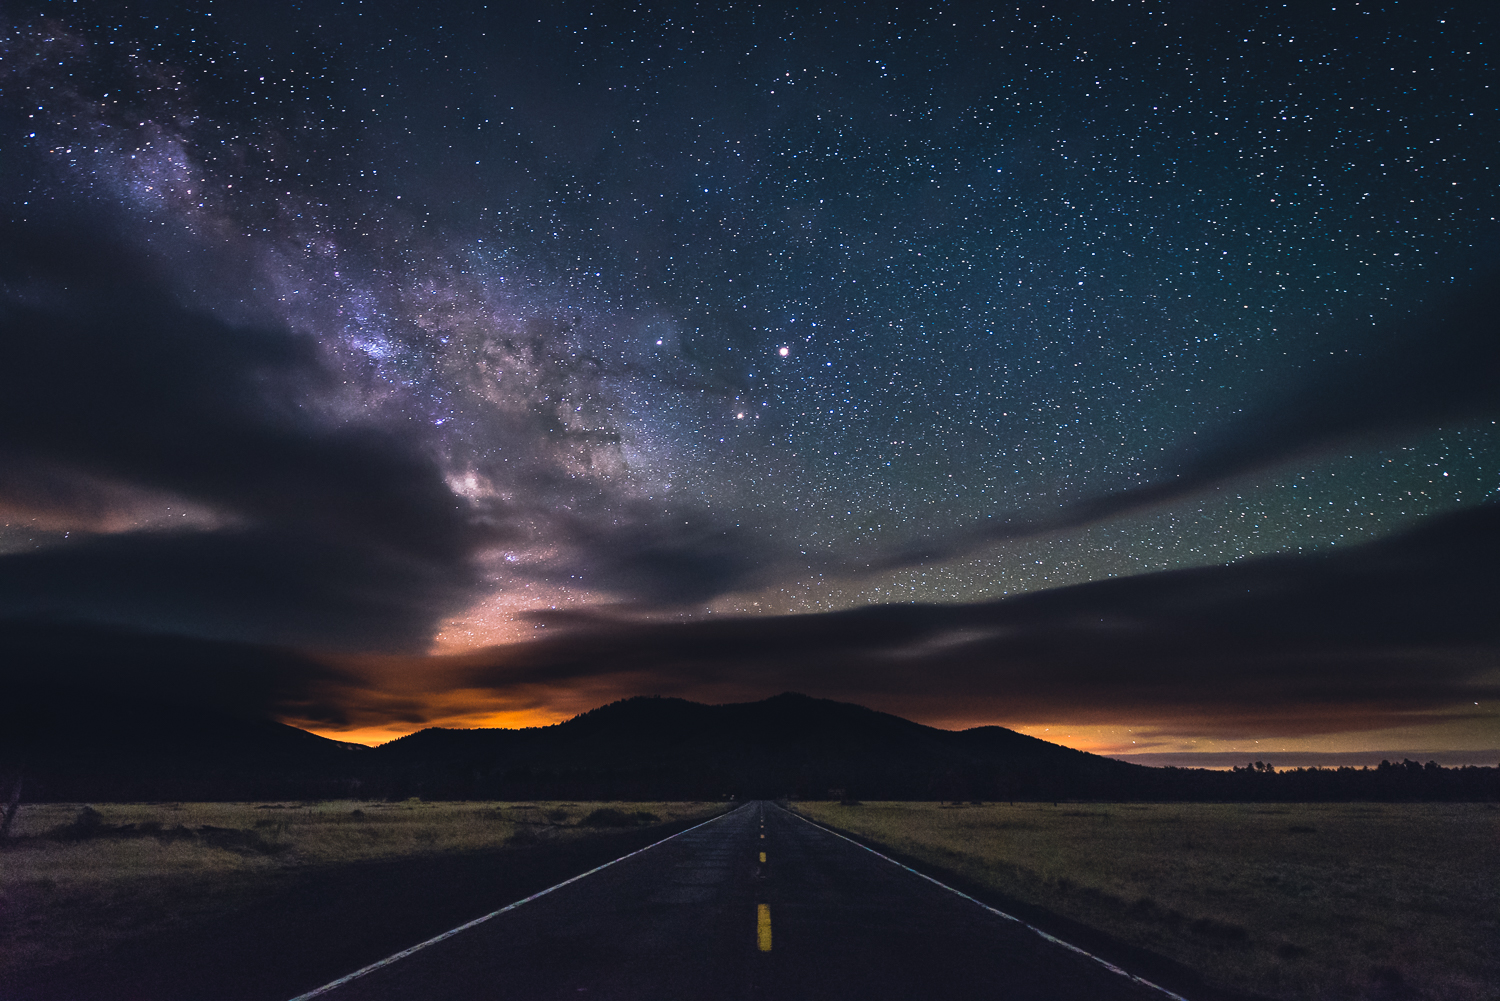 Being out in the middle of night, can be a little bit scary. This night, in particular, i was out solo, 30 miles north of Flagstaff with no sign of life...haha. The solitude, however, allowed me to take this picture right in the middle of the road looking south. Notice Mars shining bright almost directly above the yellow line, and the galactic plane of the Milky Way peaking through on the left